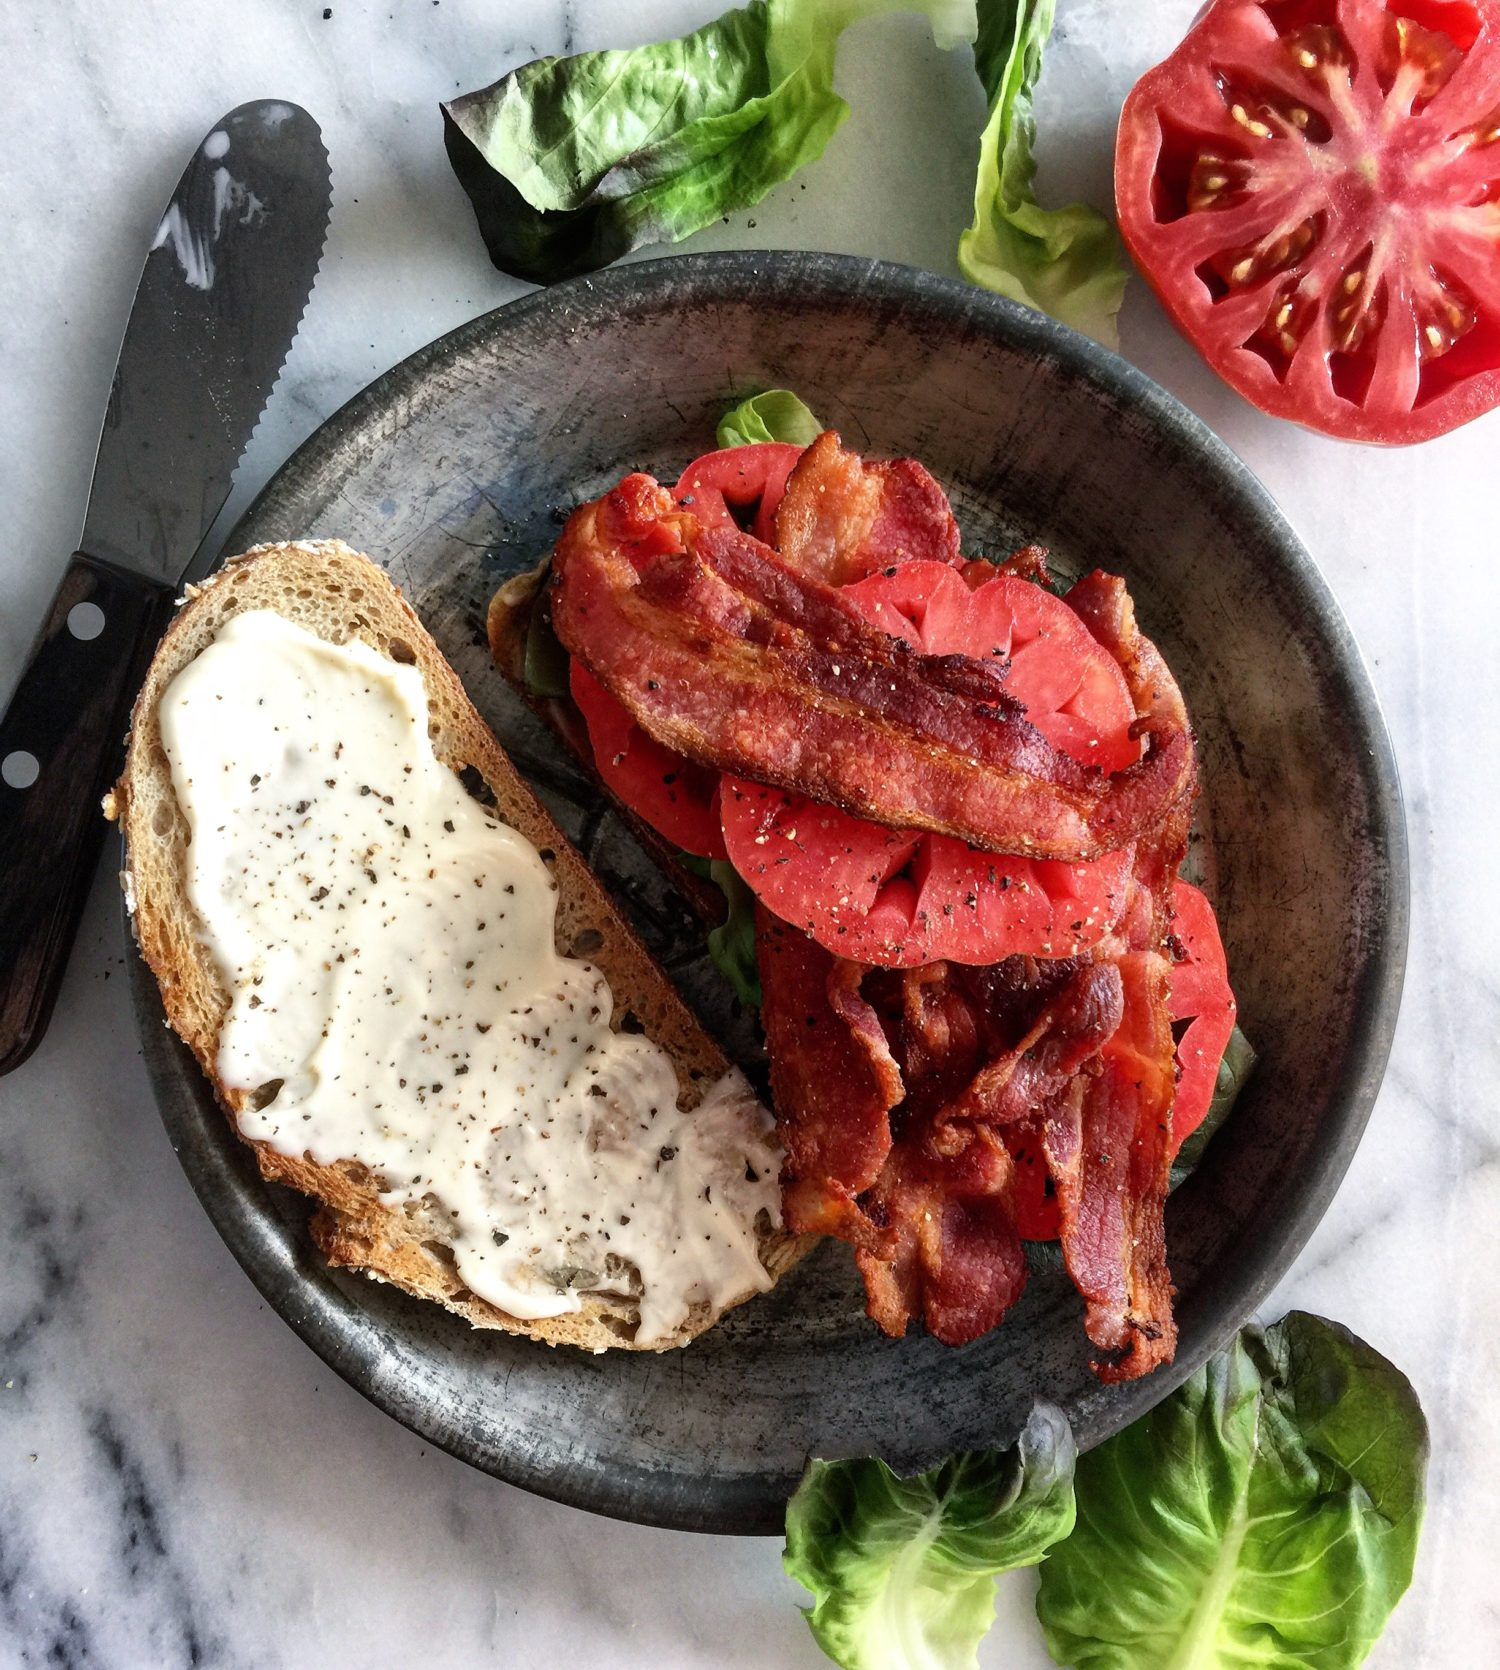 BLT bacon lettuce and tomato sandwich